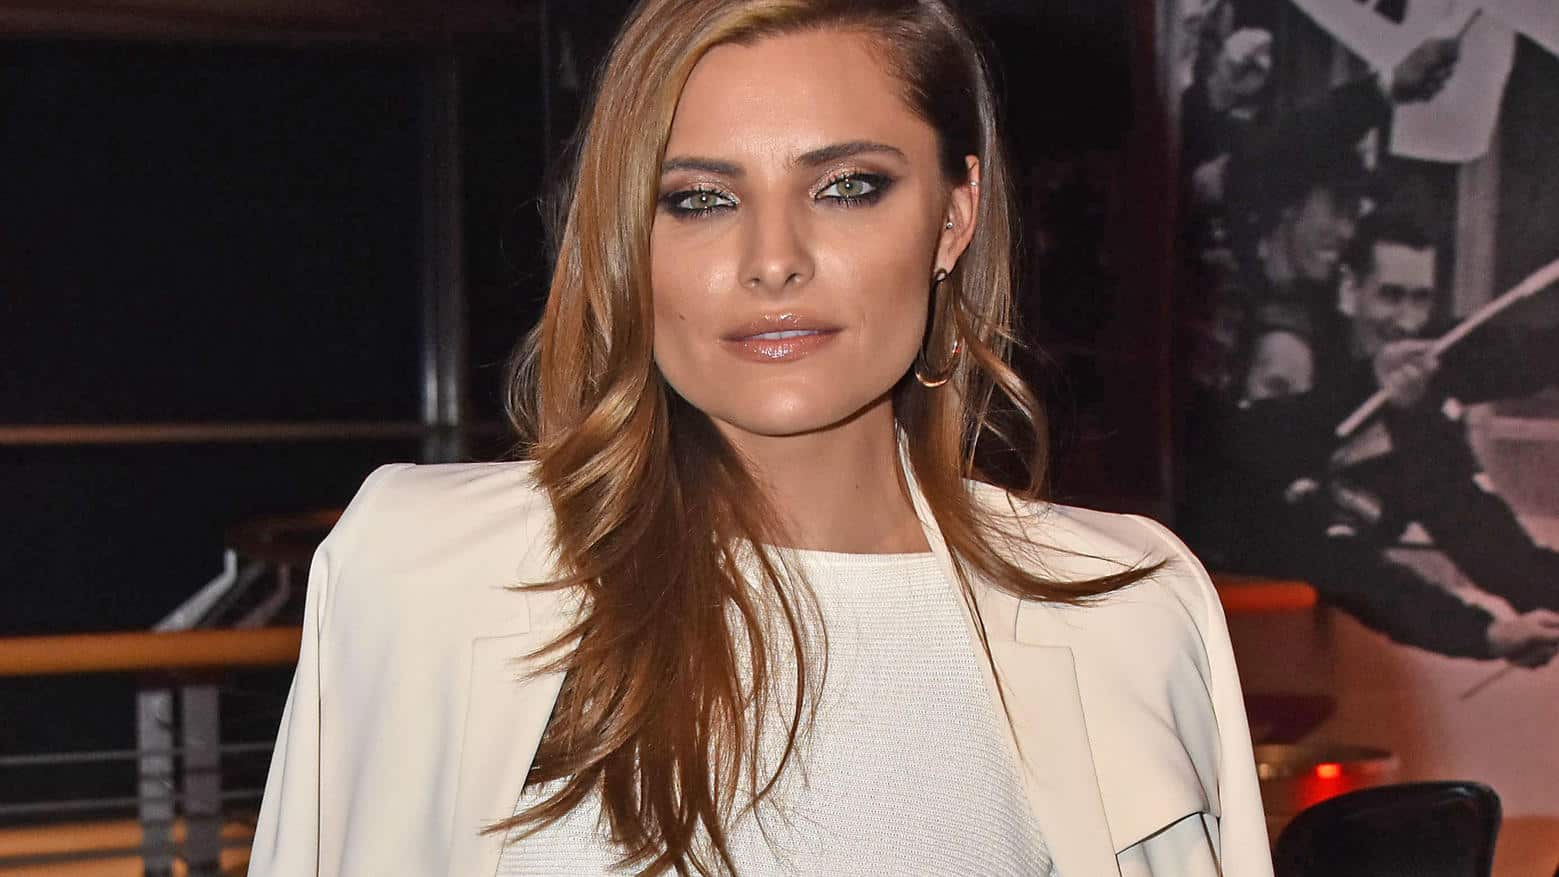 Images Sophia Thomalla nude (55 photo), Pussy, Fappening, Boobs, cleavage 2017